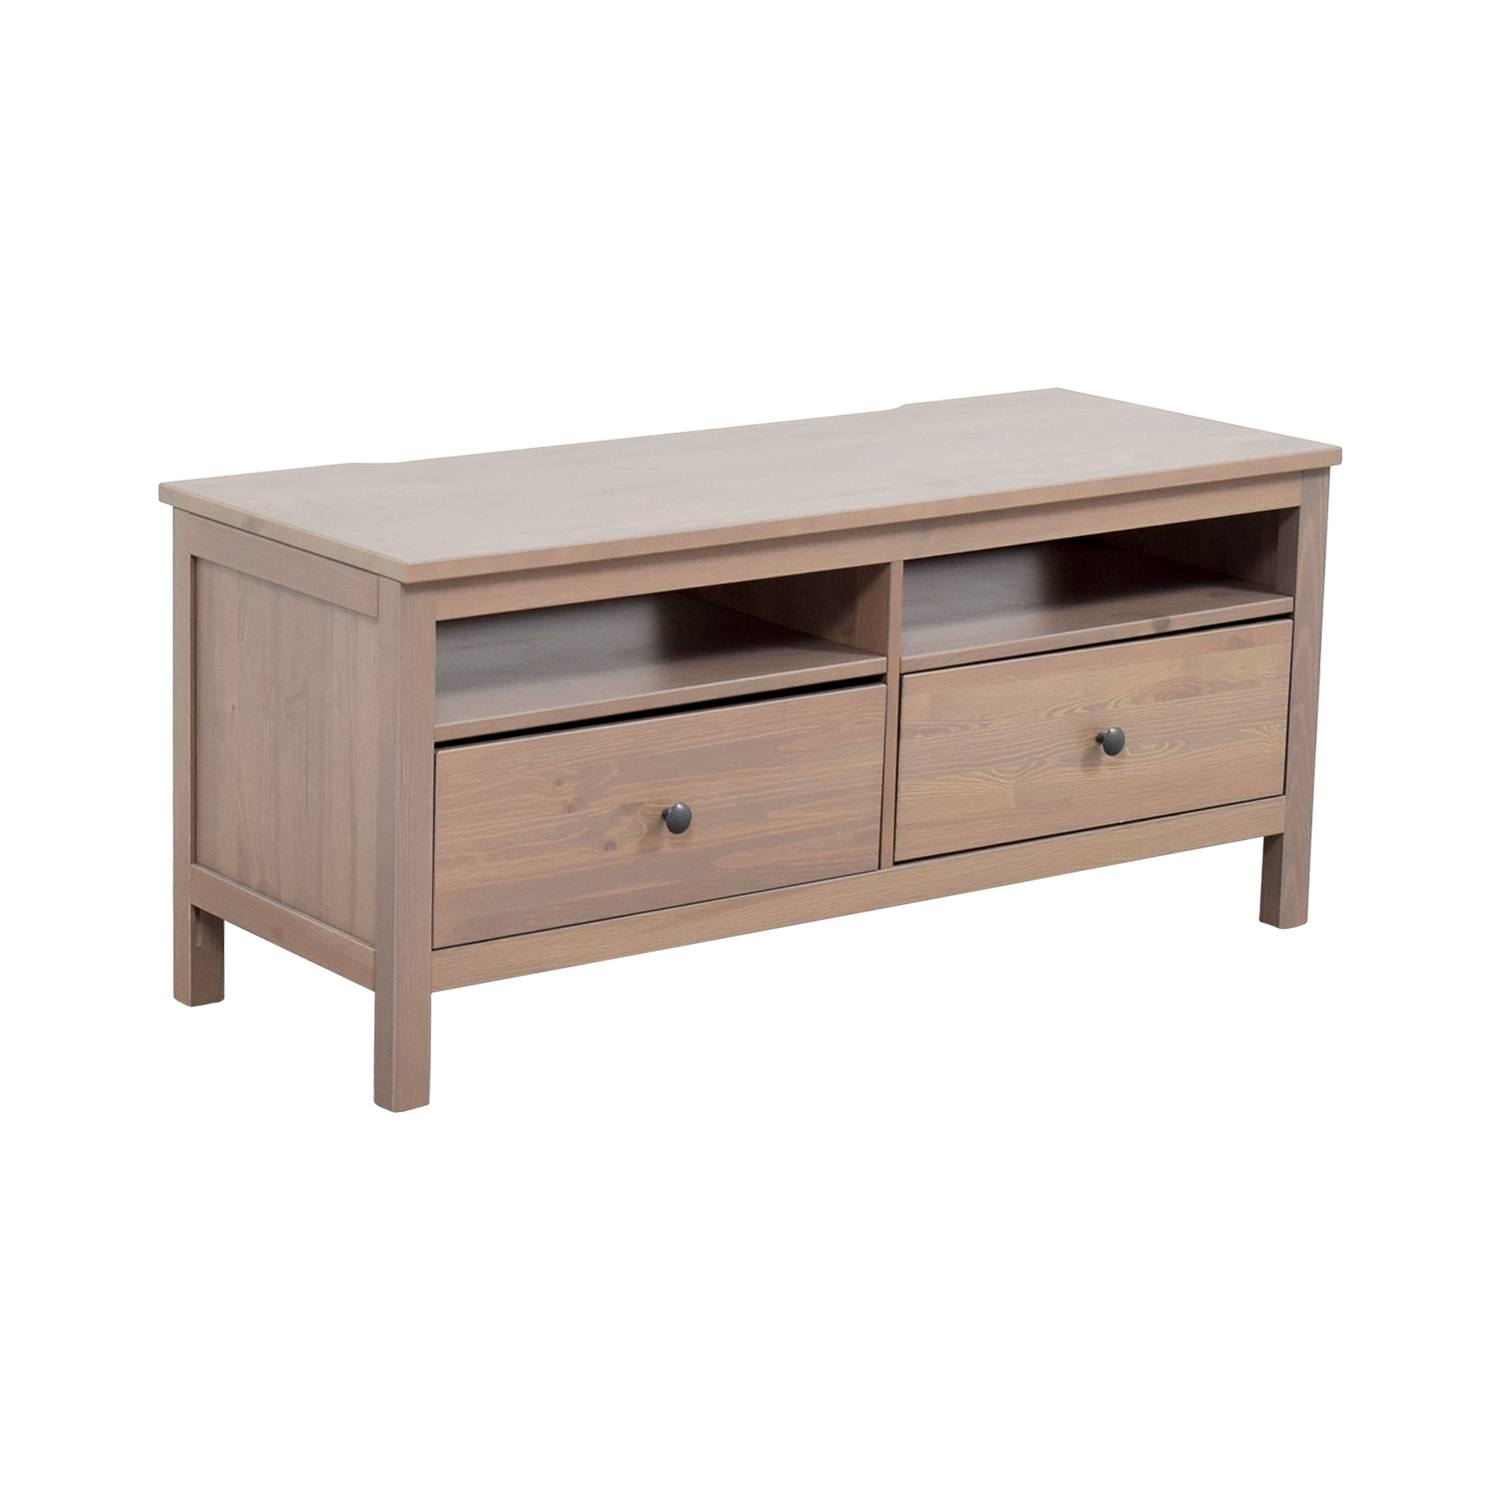 IKEA IKEA Two-Drawer TV Stand discount